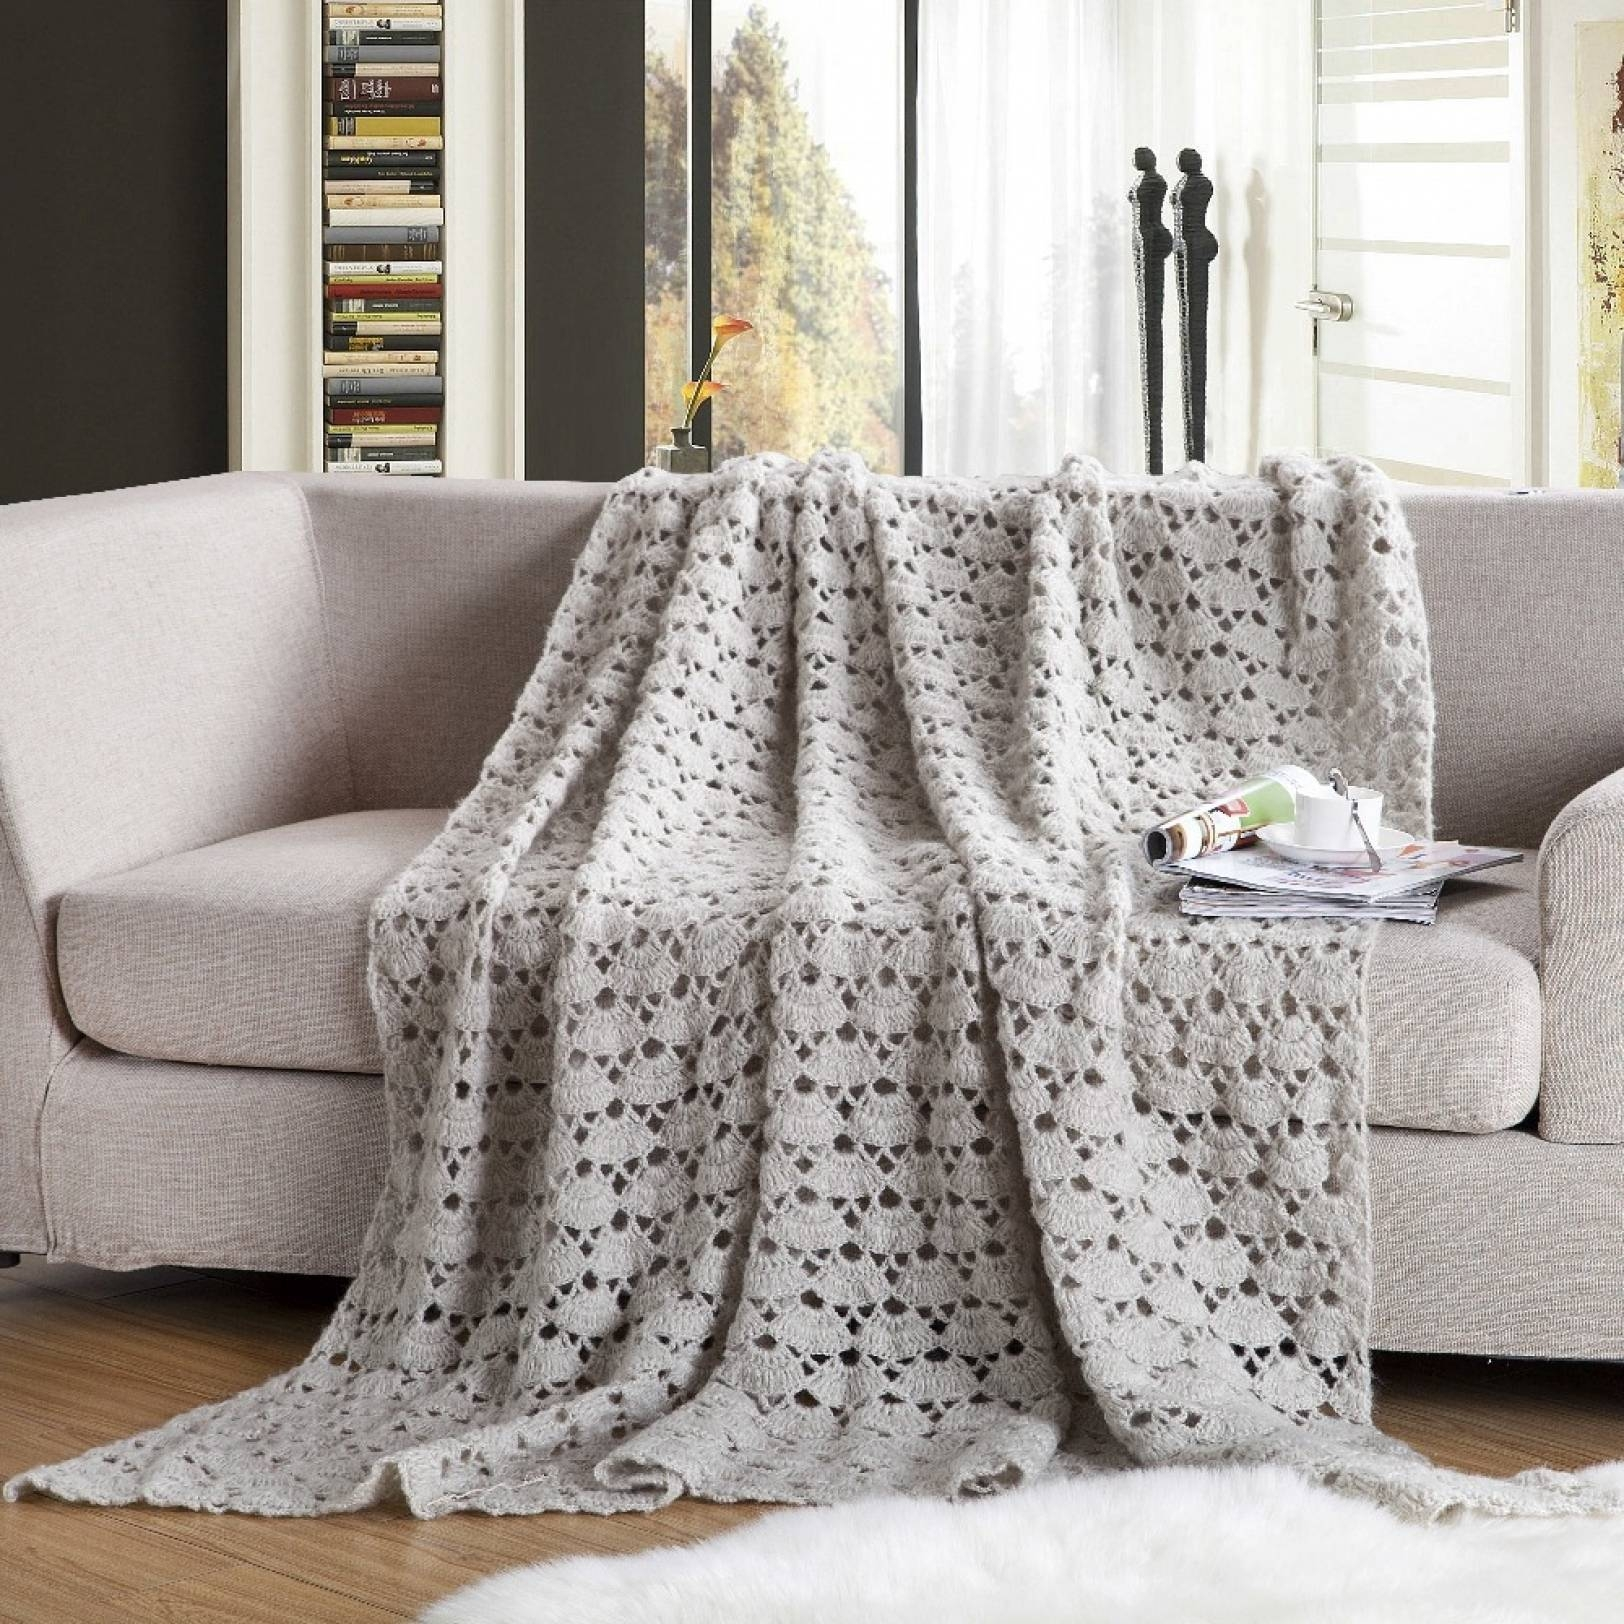 Sofas Center : Surprisingw Blankets For Sofa Photos Design Best for Cotton Throws For Sofas And Chairs (Image 24 of 30)